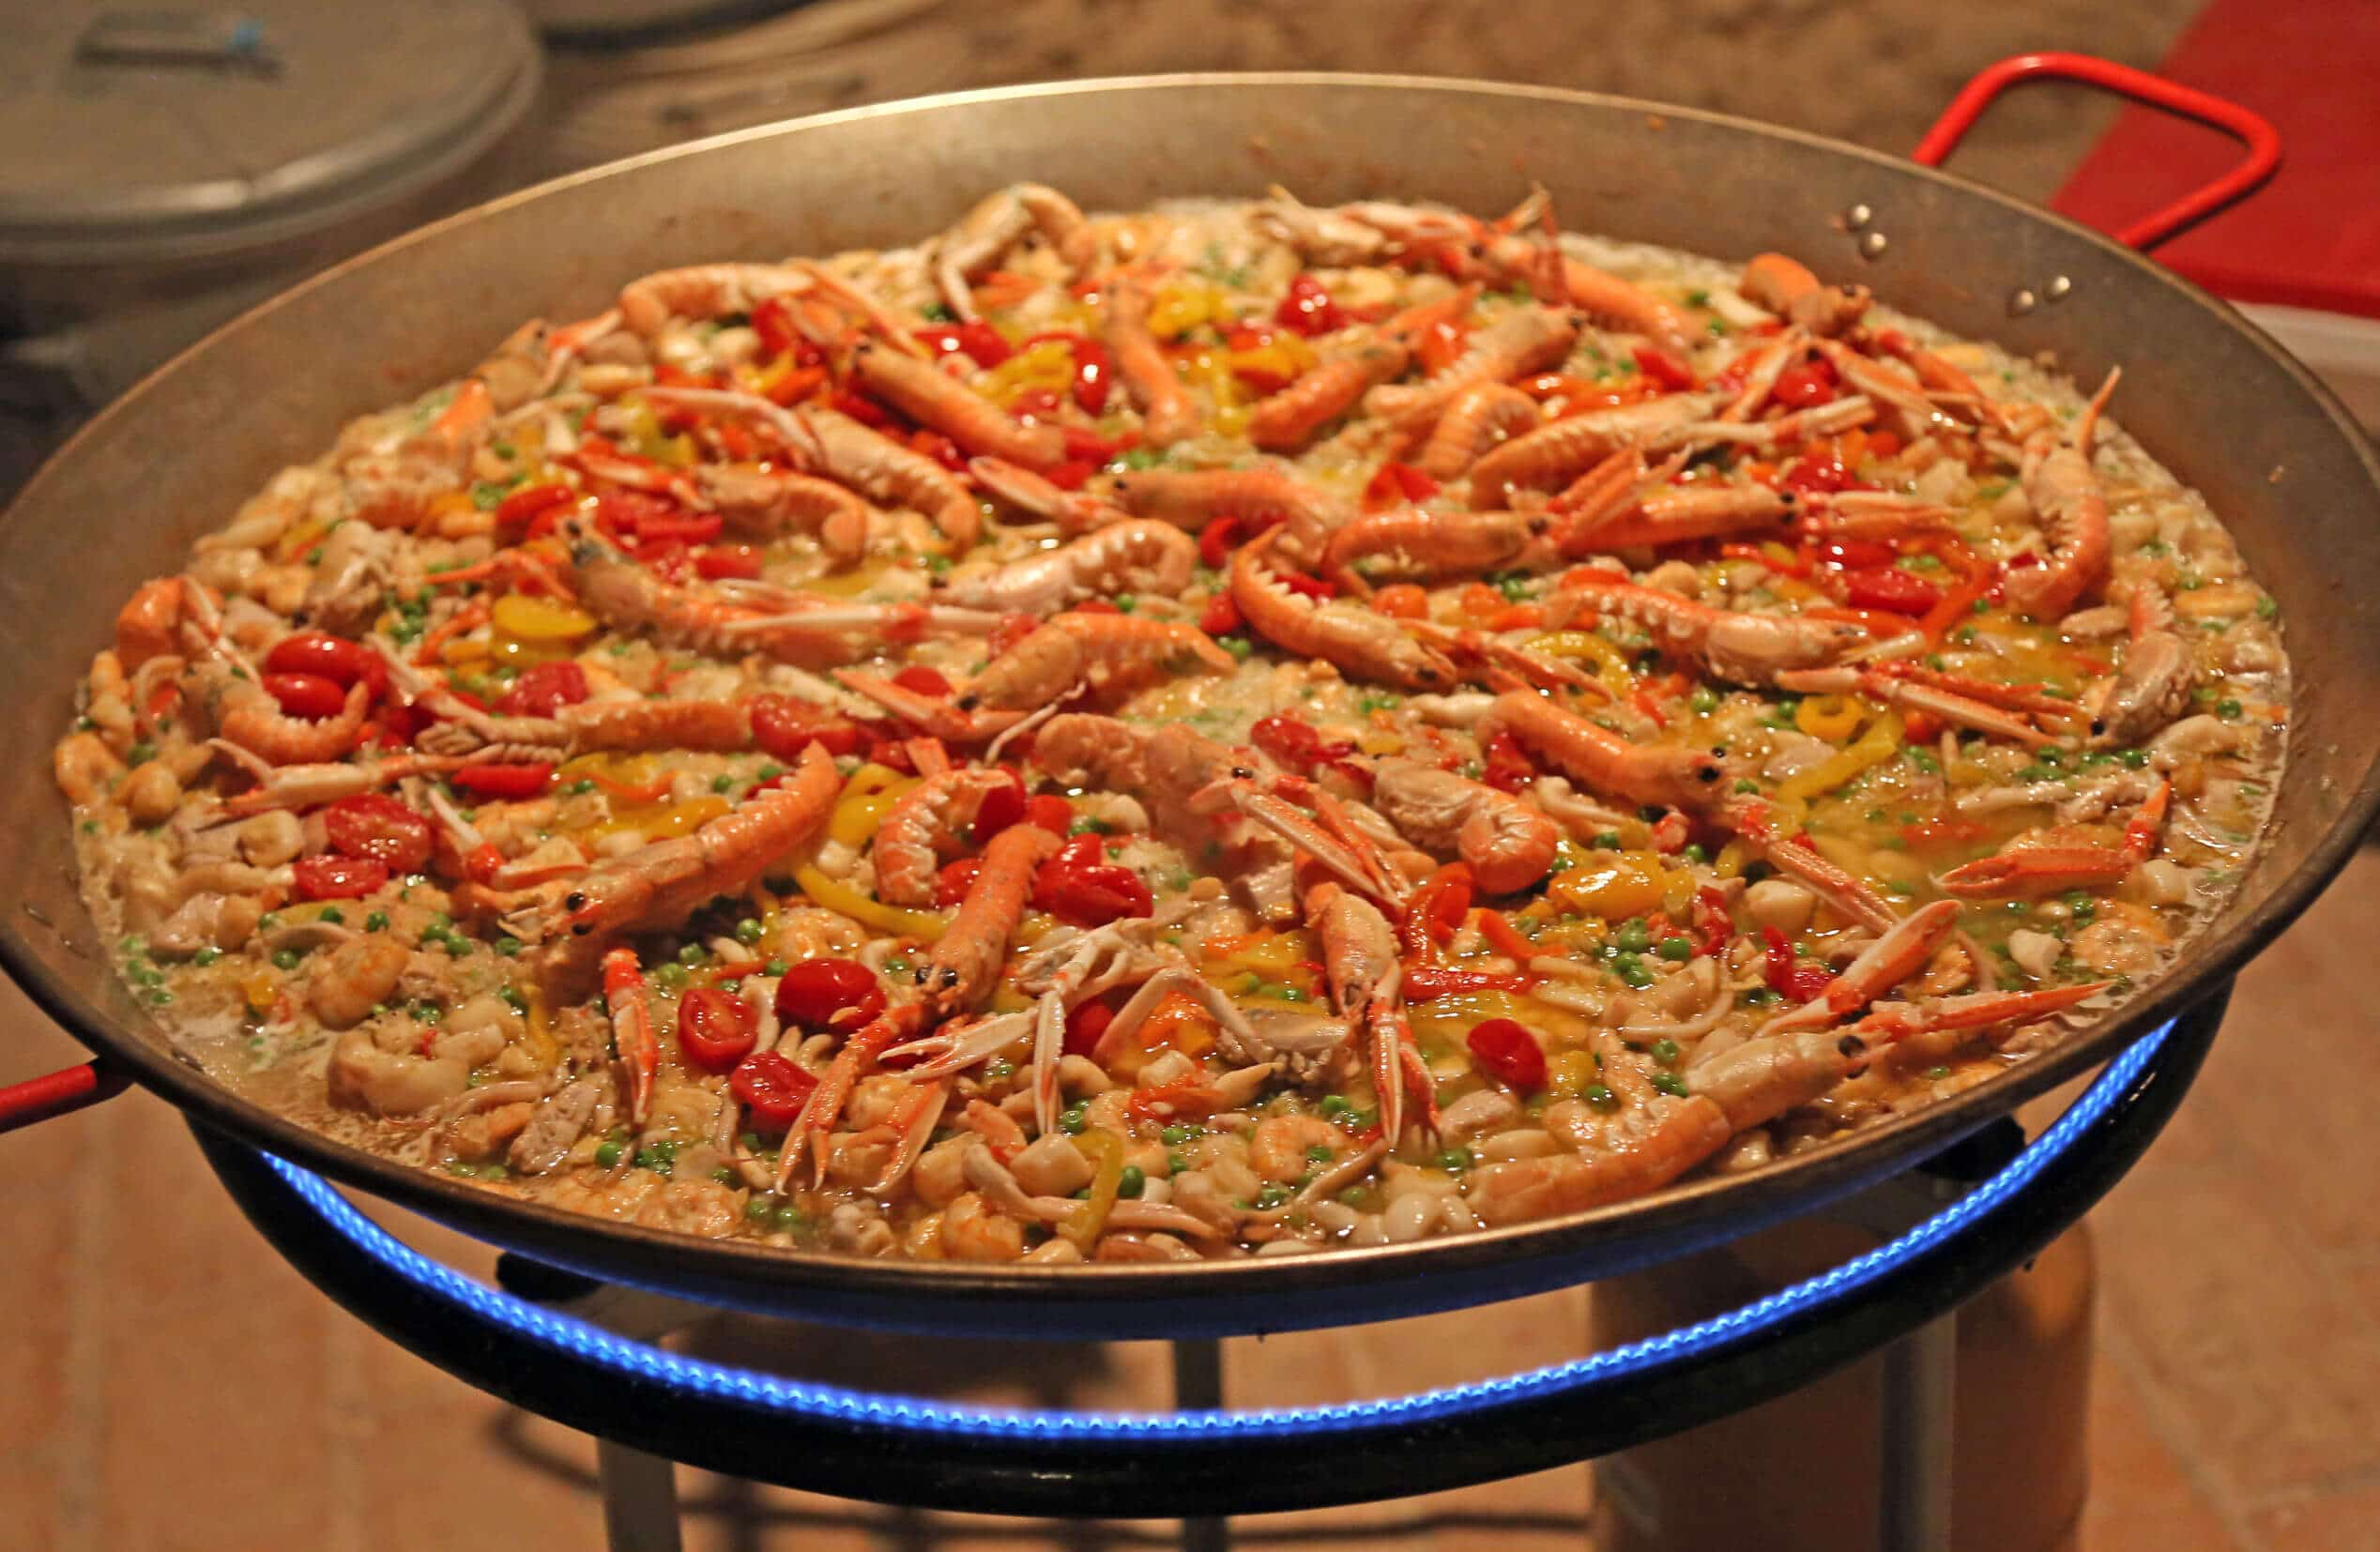 Sydney Paella catering cooking paella with prawns and rice